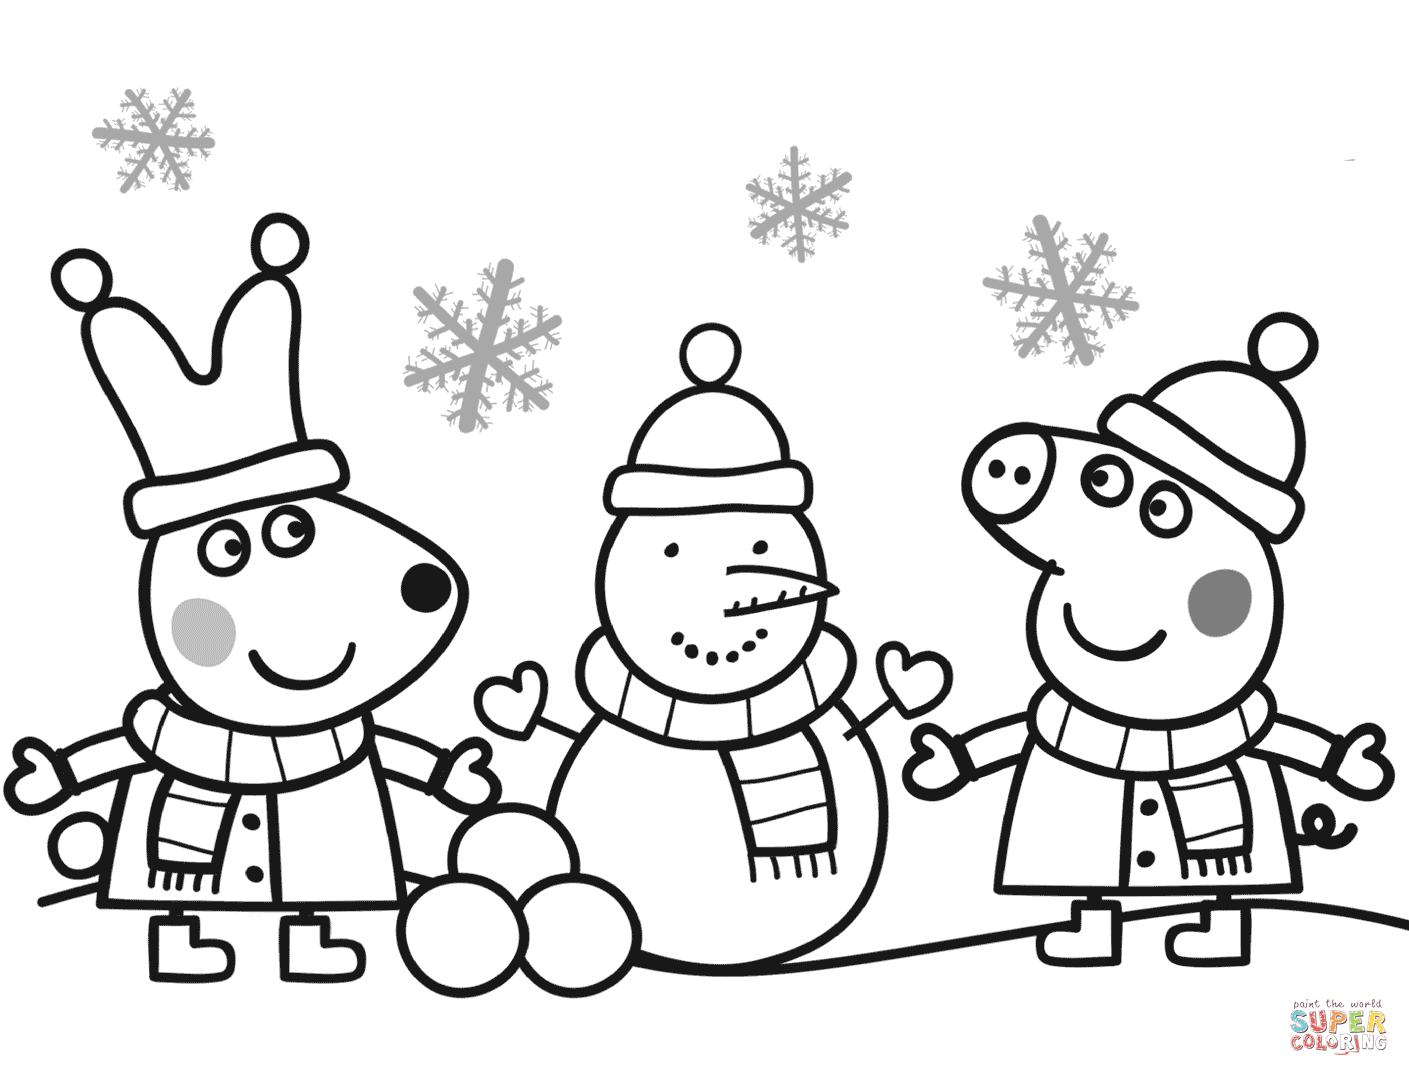 1409x1076 Peppa Pig Drawing Templates Peppa Pig Coloring Pages Free